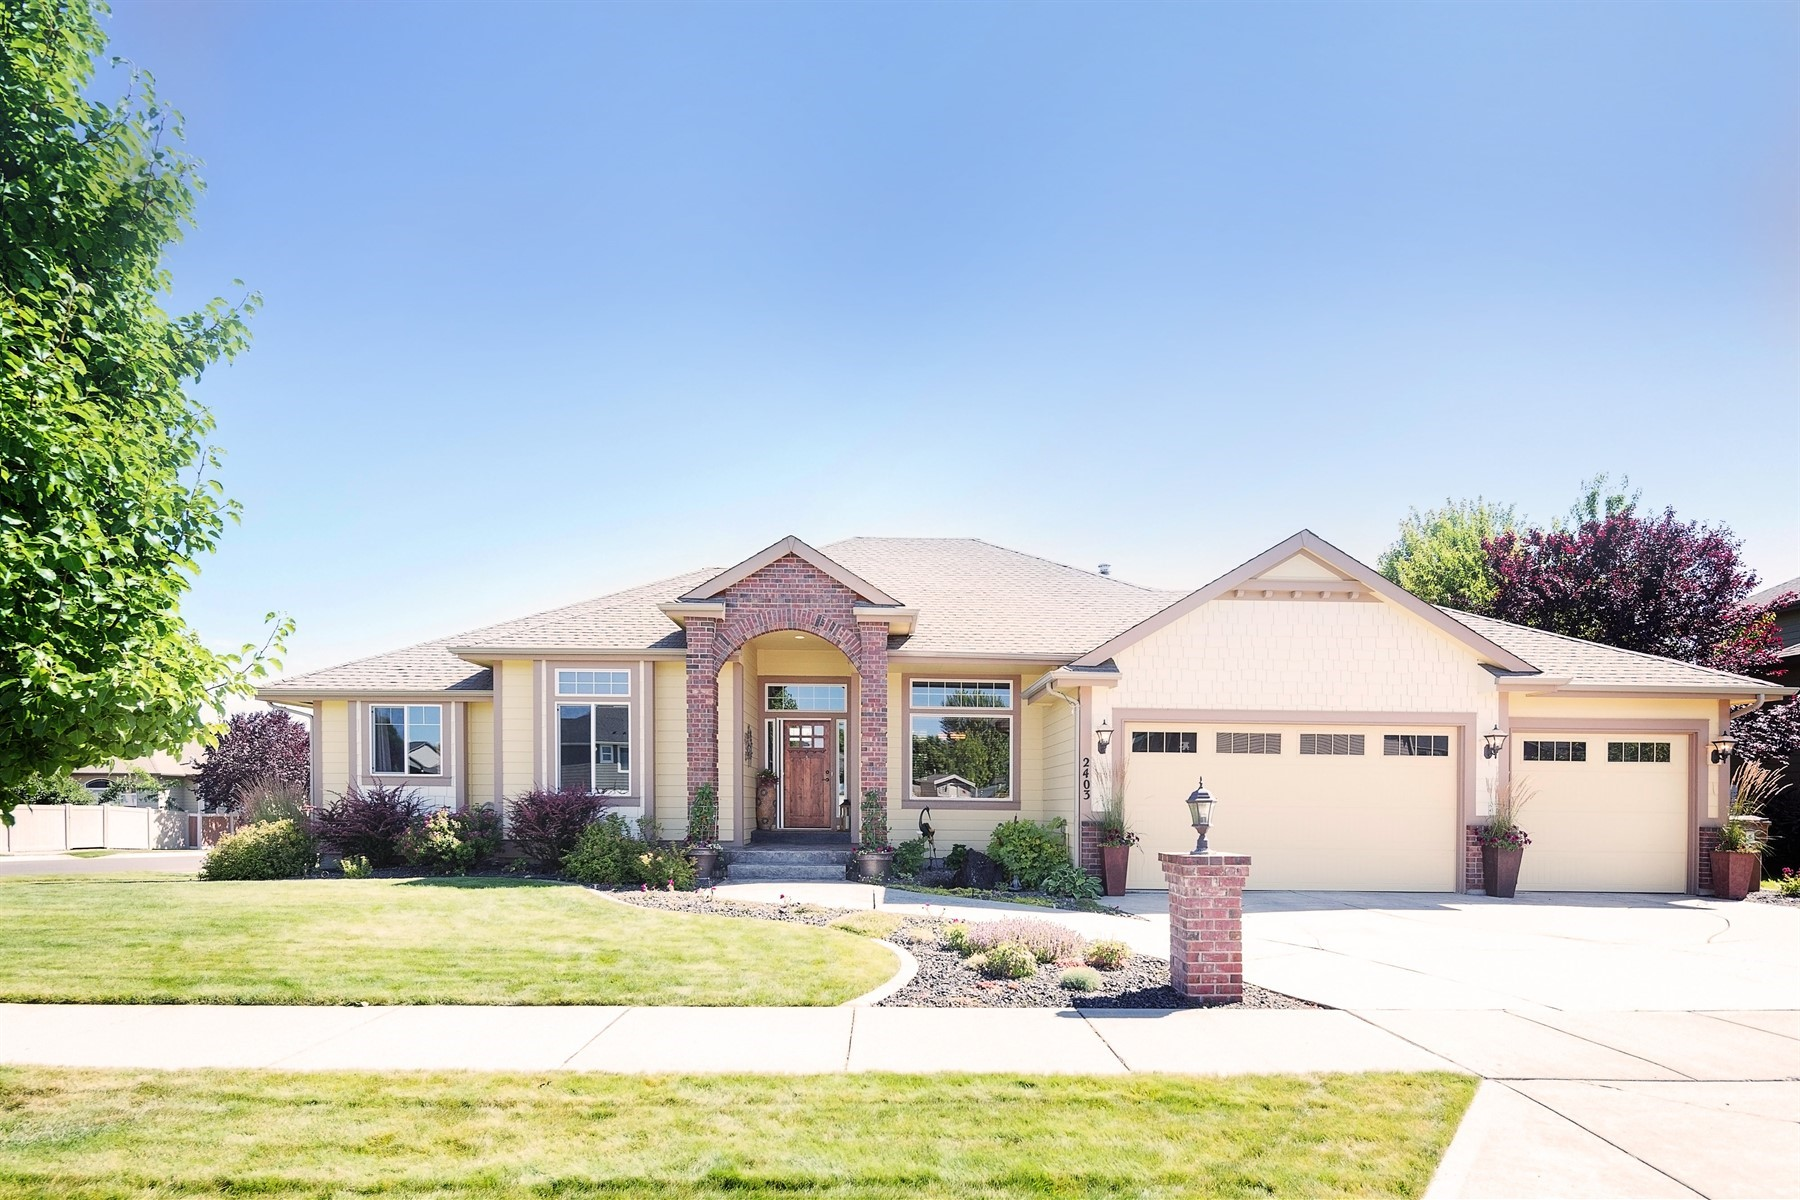 Single Family Homes for Sale at Impeccable 5 Mile Rancher 2403 W Kammi Ave Spokane, Washington 99208 United States